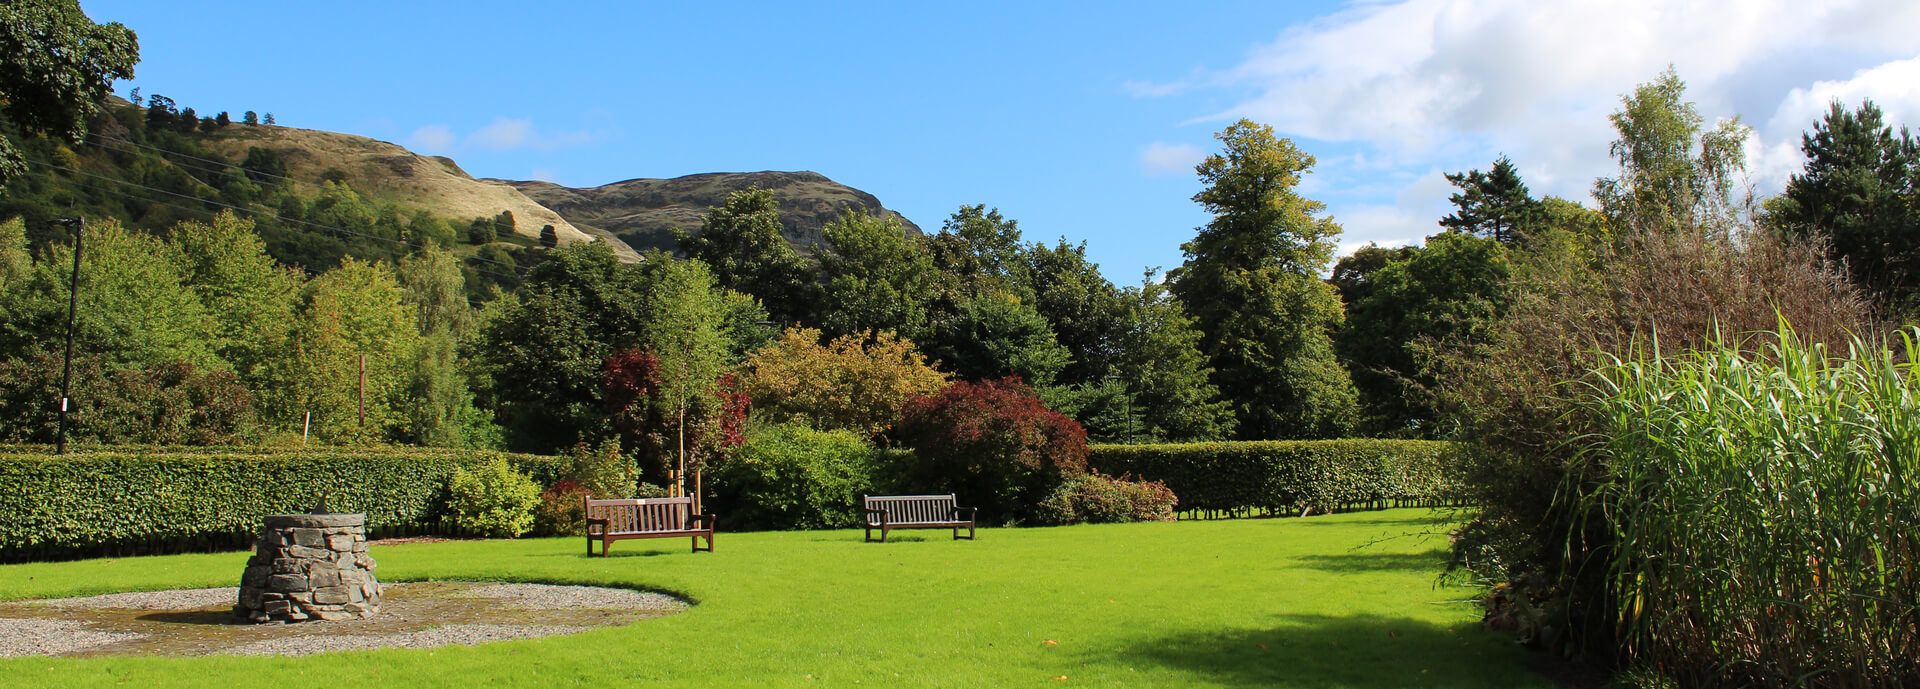 Garden, benches, hill, sun dial under a blue sky